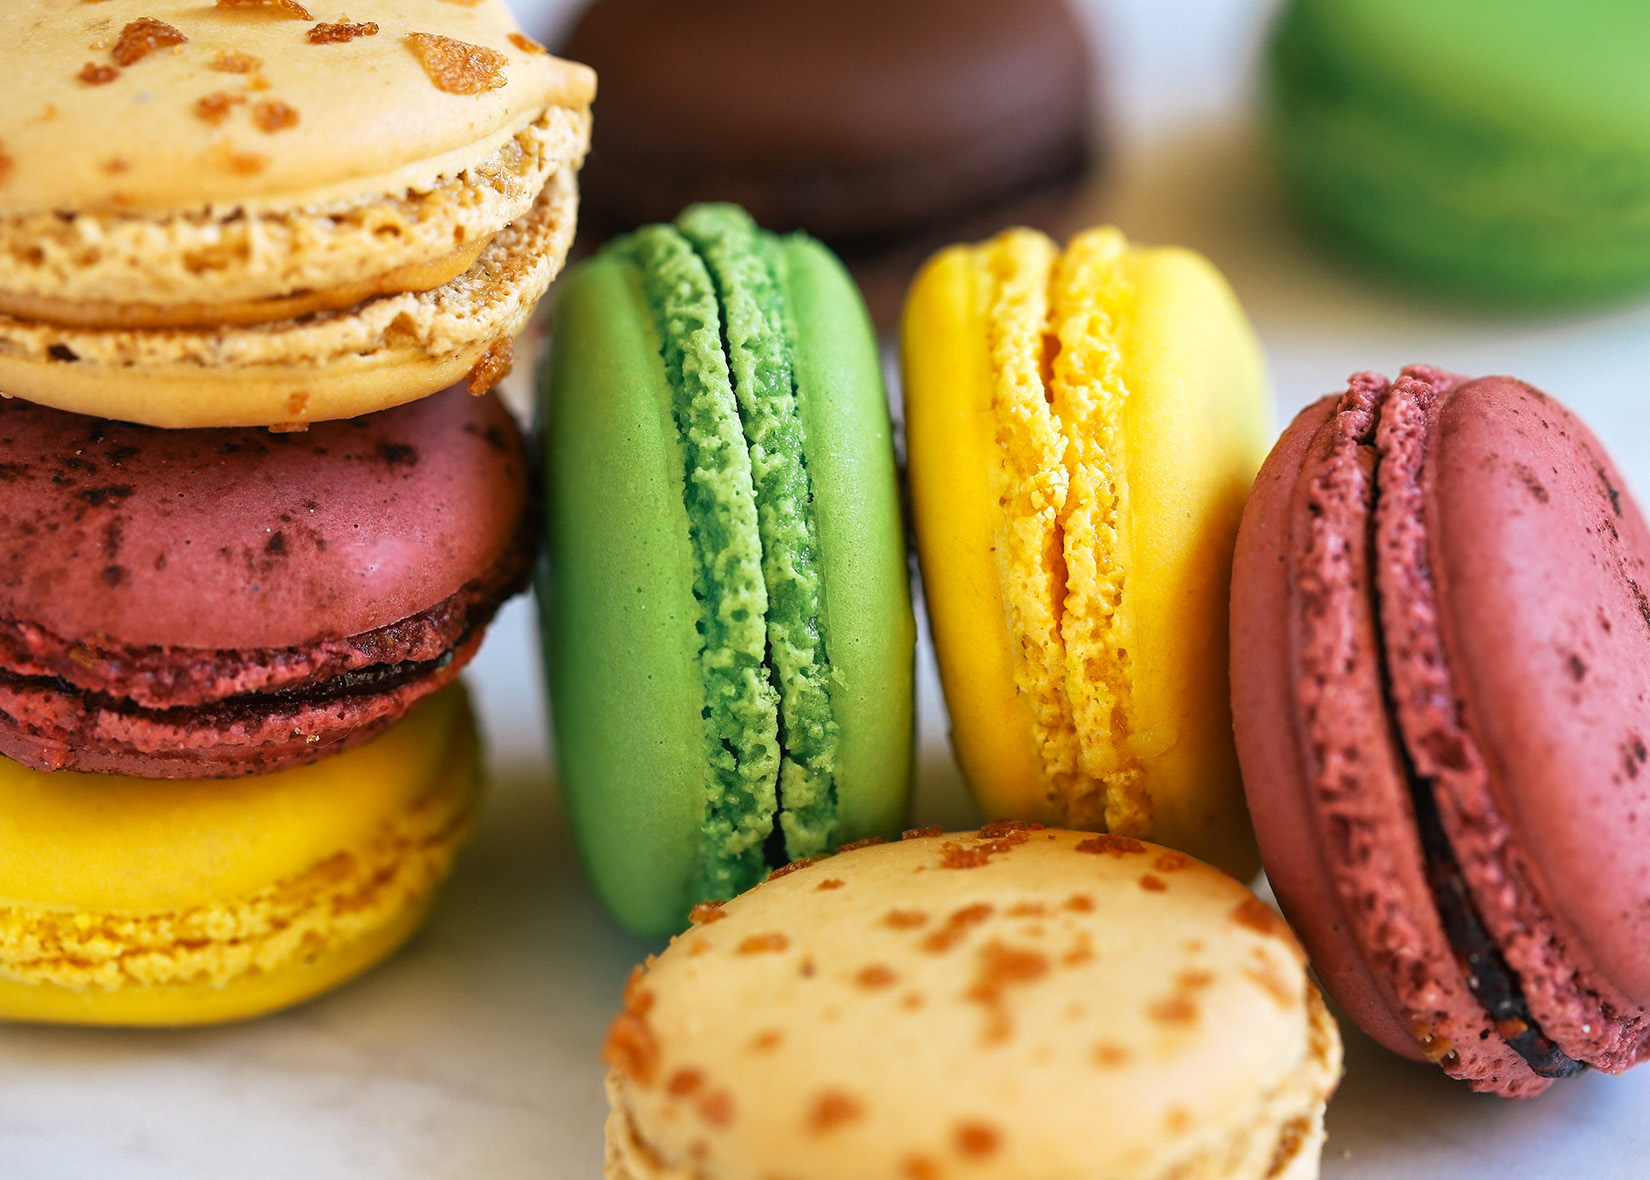 9 maart 2019 – Macaron Workshop in Amsterdam